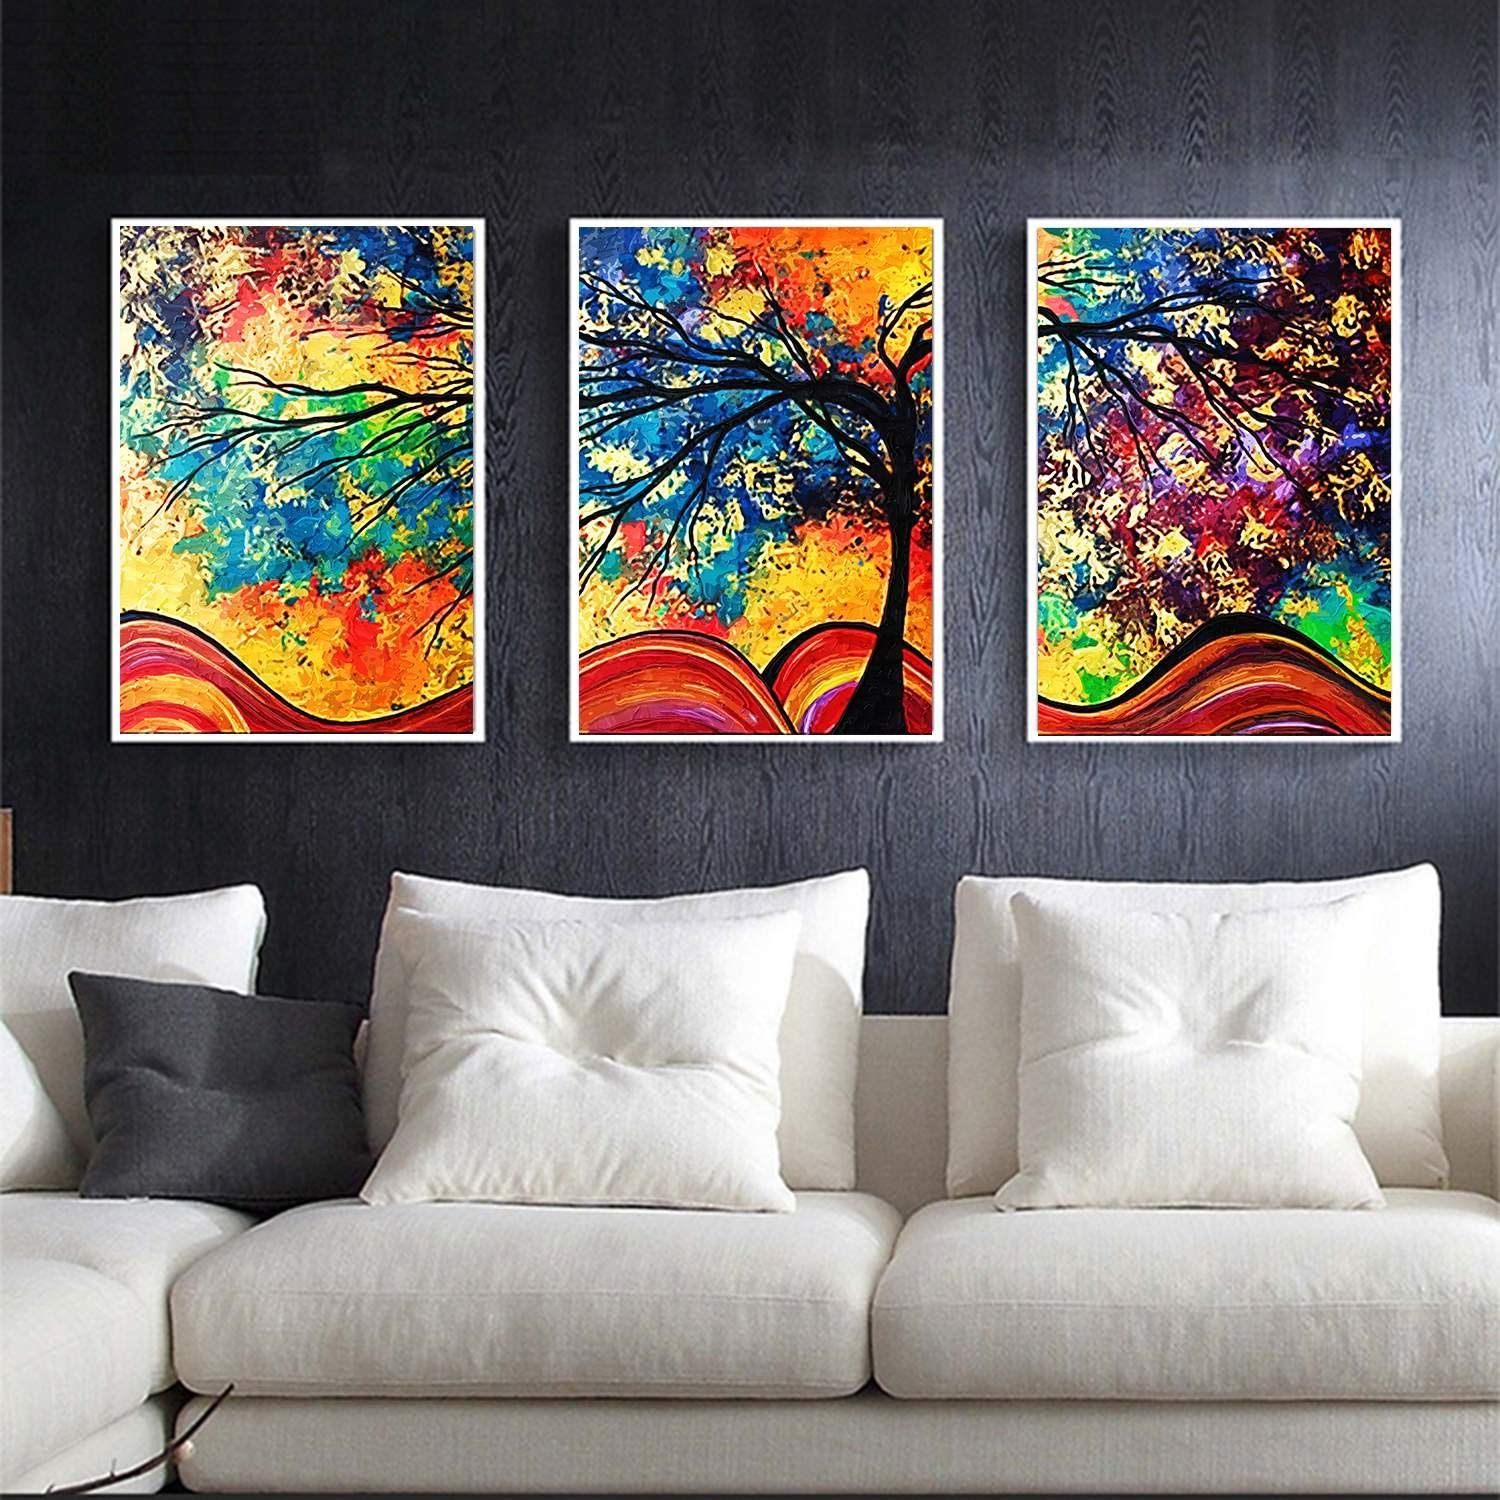 Cindere 3Pcs 7.9 x 11.8inch Oil Painting House Canvas Wall Art Landscape Painting Print on Canvas Wall Decoration Abstract Tree